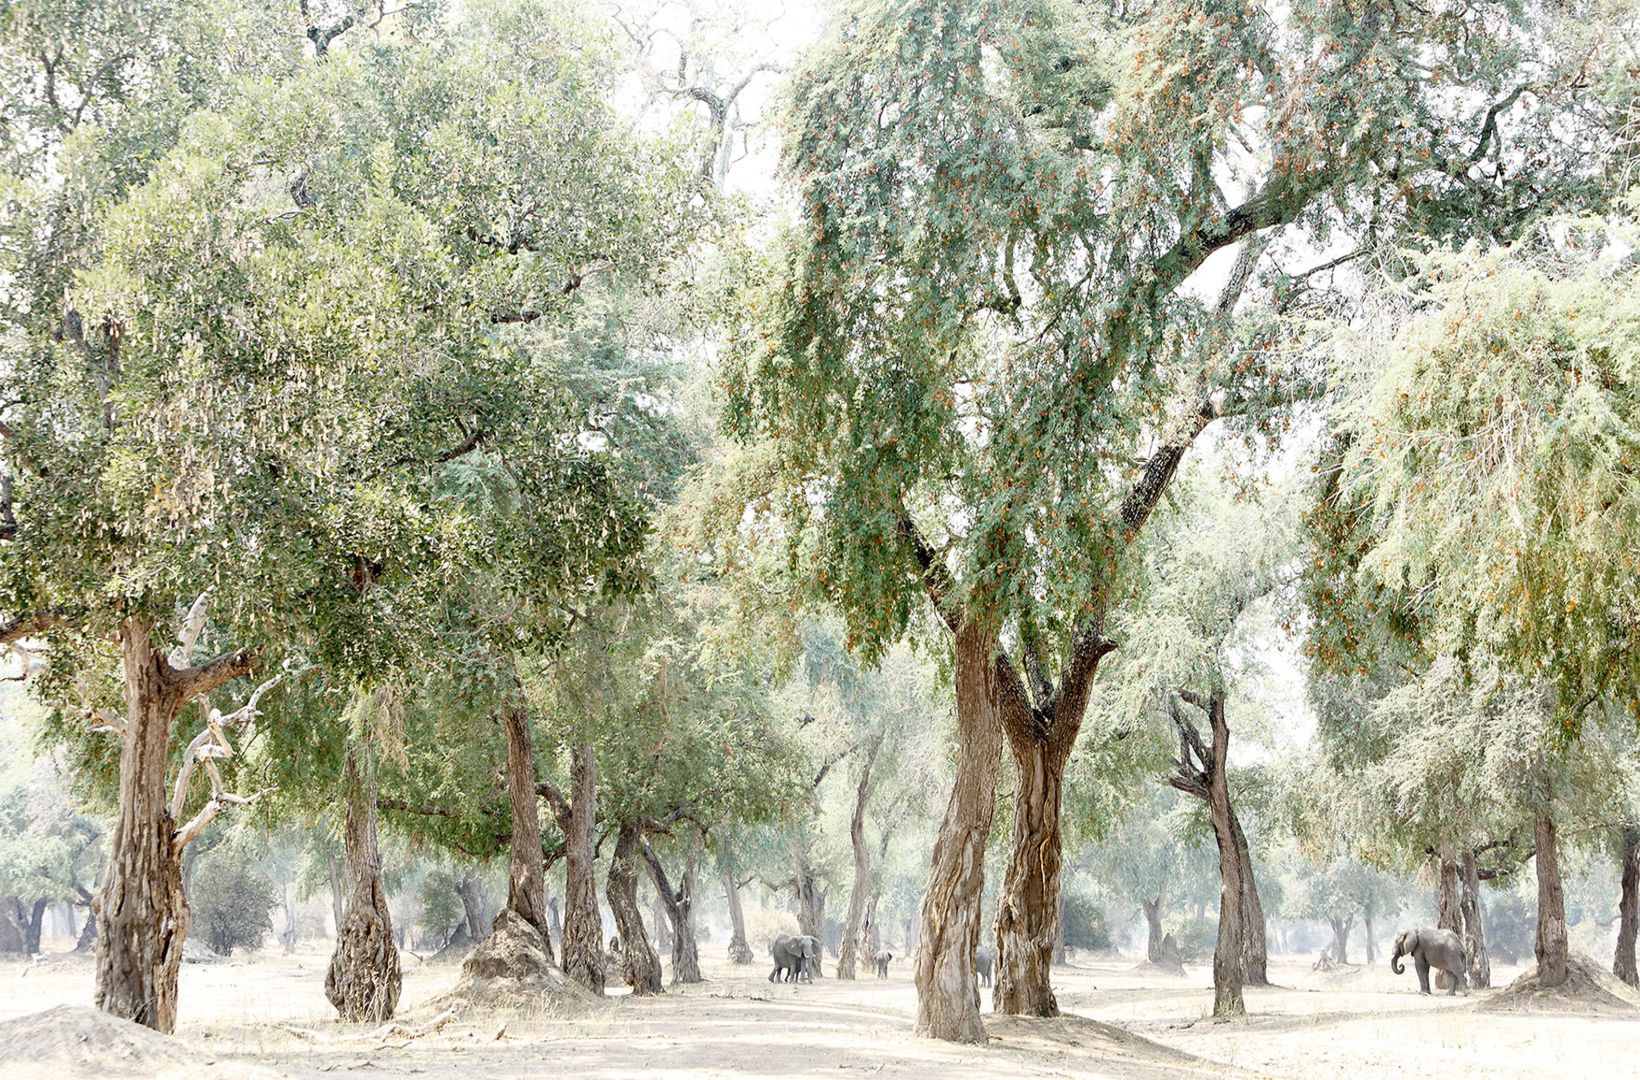 A regal Albida Fibida forest is a ripe feeding ground to a herd of African elephants seeking the dropped seed pods in Mana Pools National Park Zimbabwe